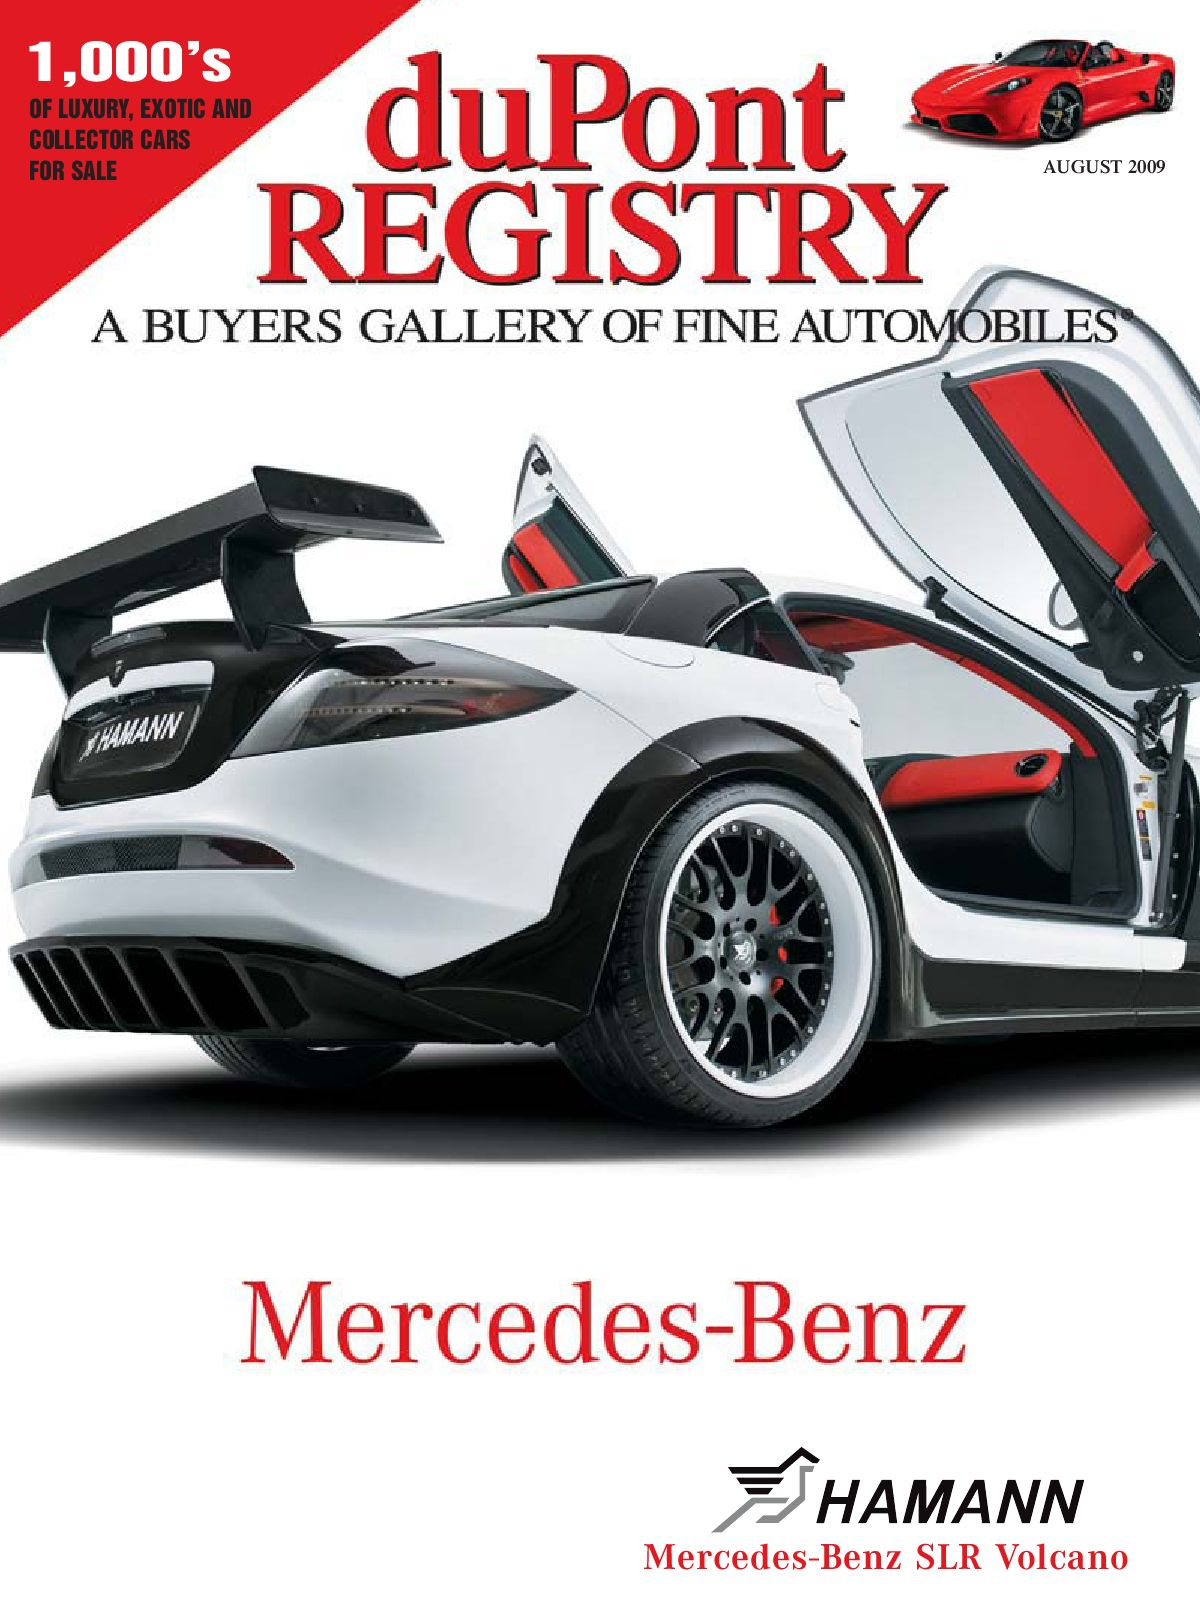 duPontREGISTRY Autos August 2009 by duPont REGISTRY issuu